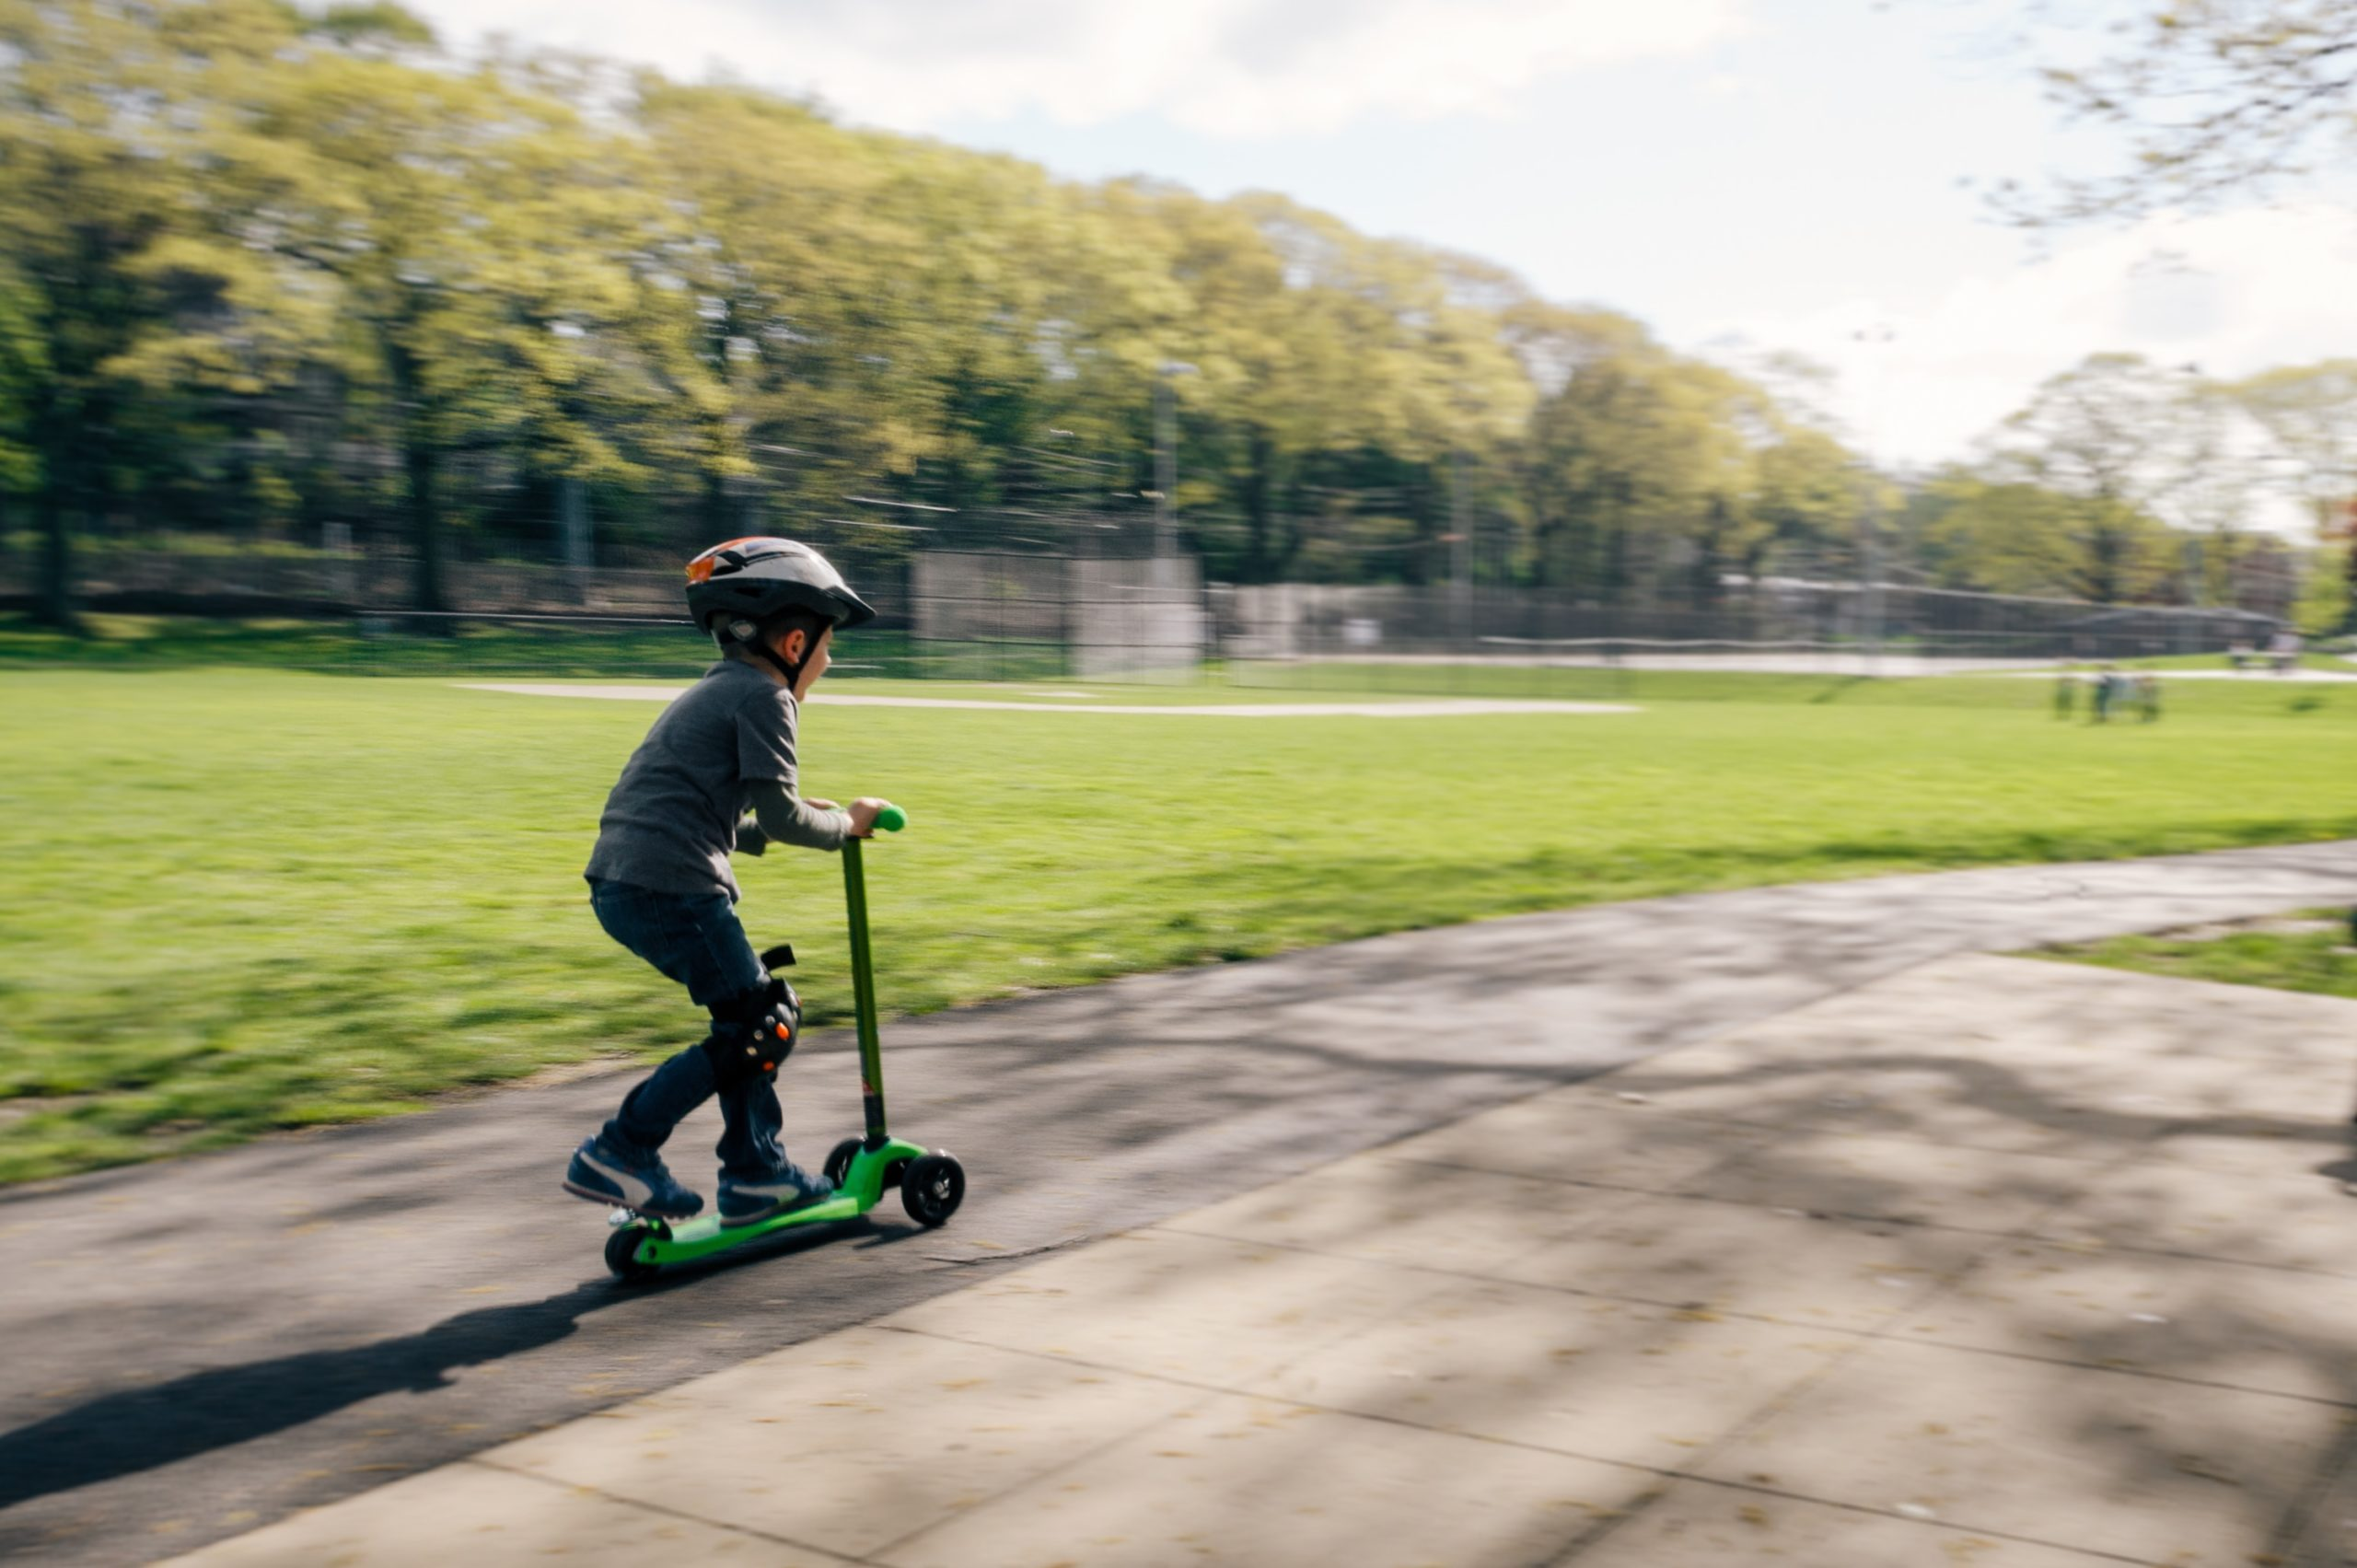 kid on green scooter   is your child too busy